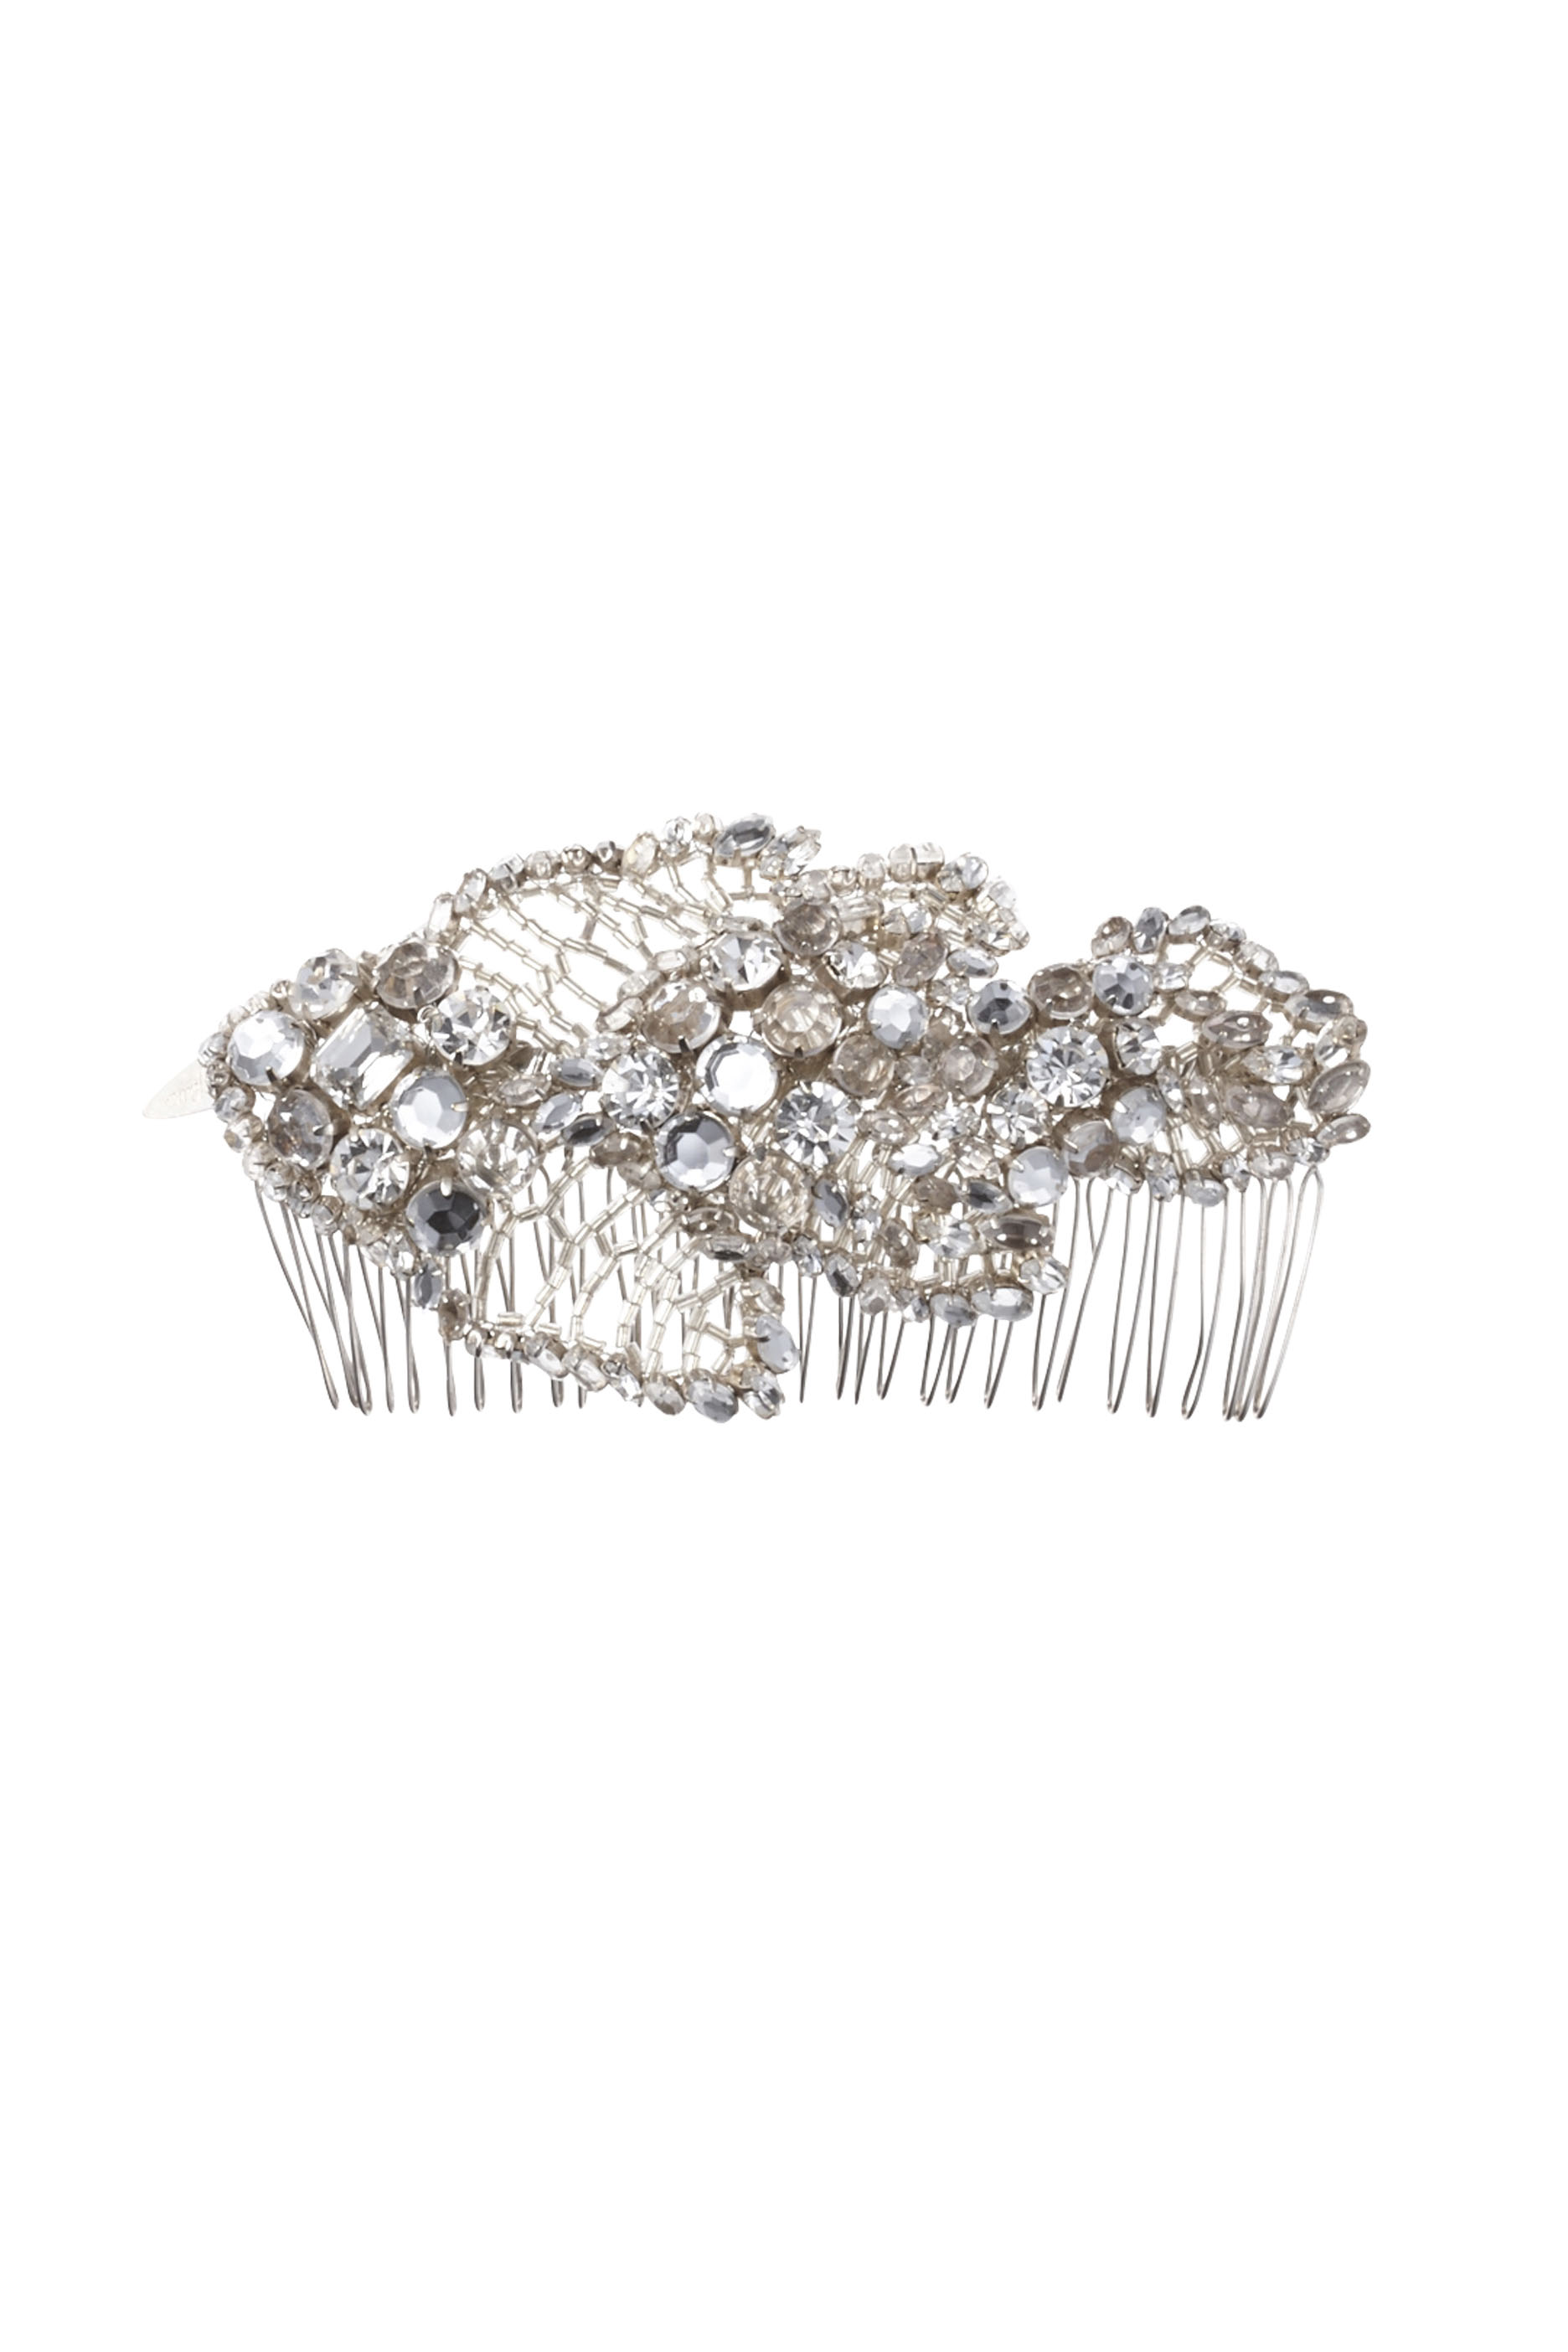 [RENTAL][Acacia Comb Crystal]by JennyPackham(参考価格¥46,400)